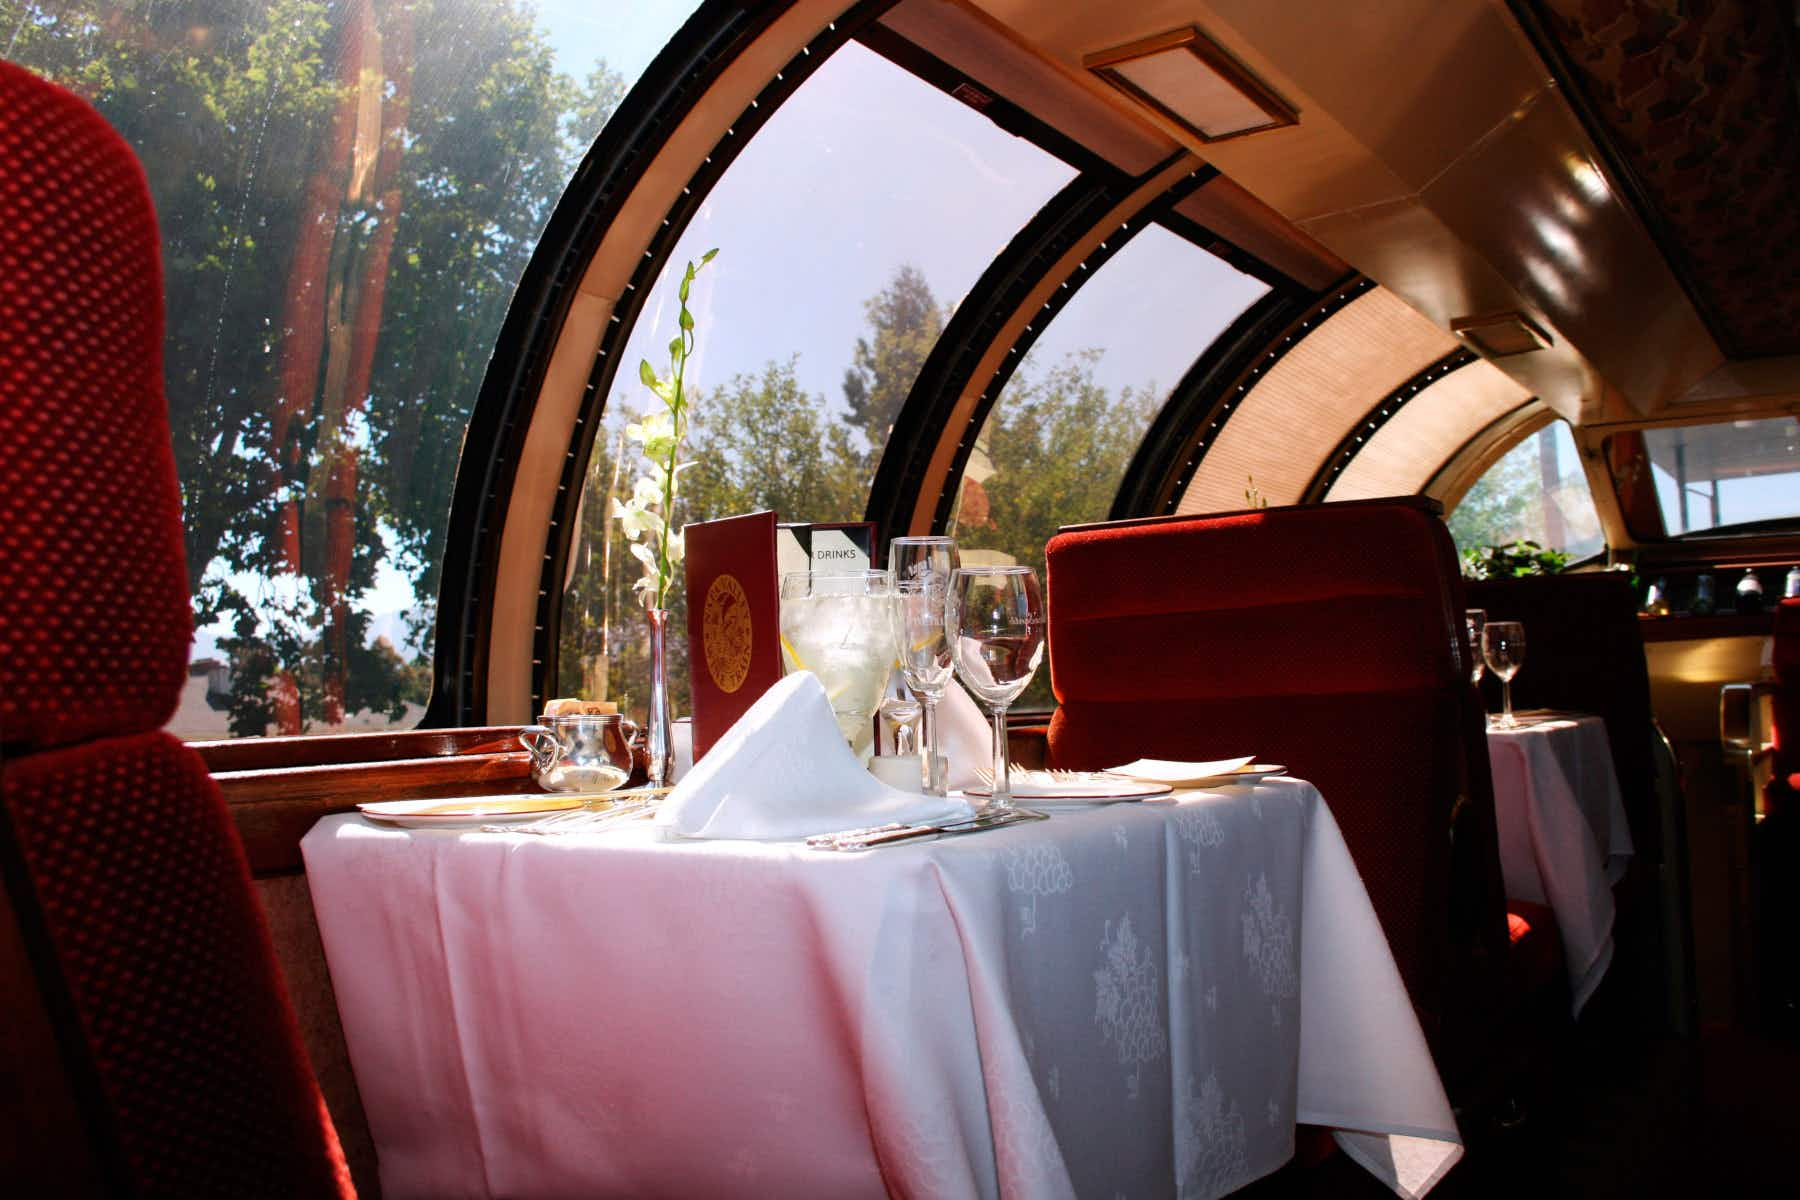 Solve a 1920s murder mystery aboard a wine train in the Napa Valley